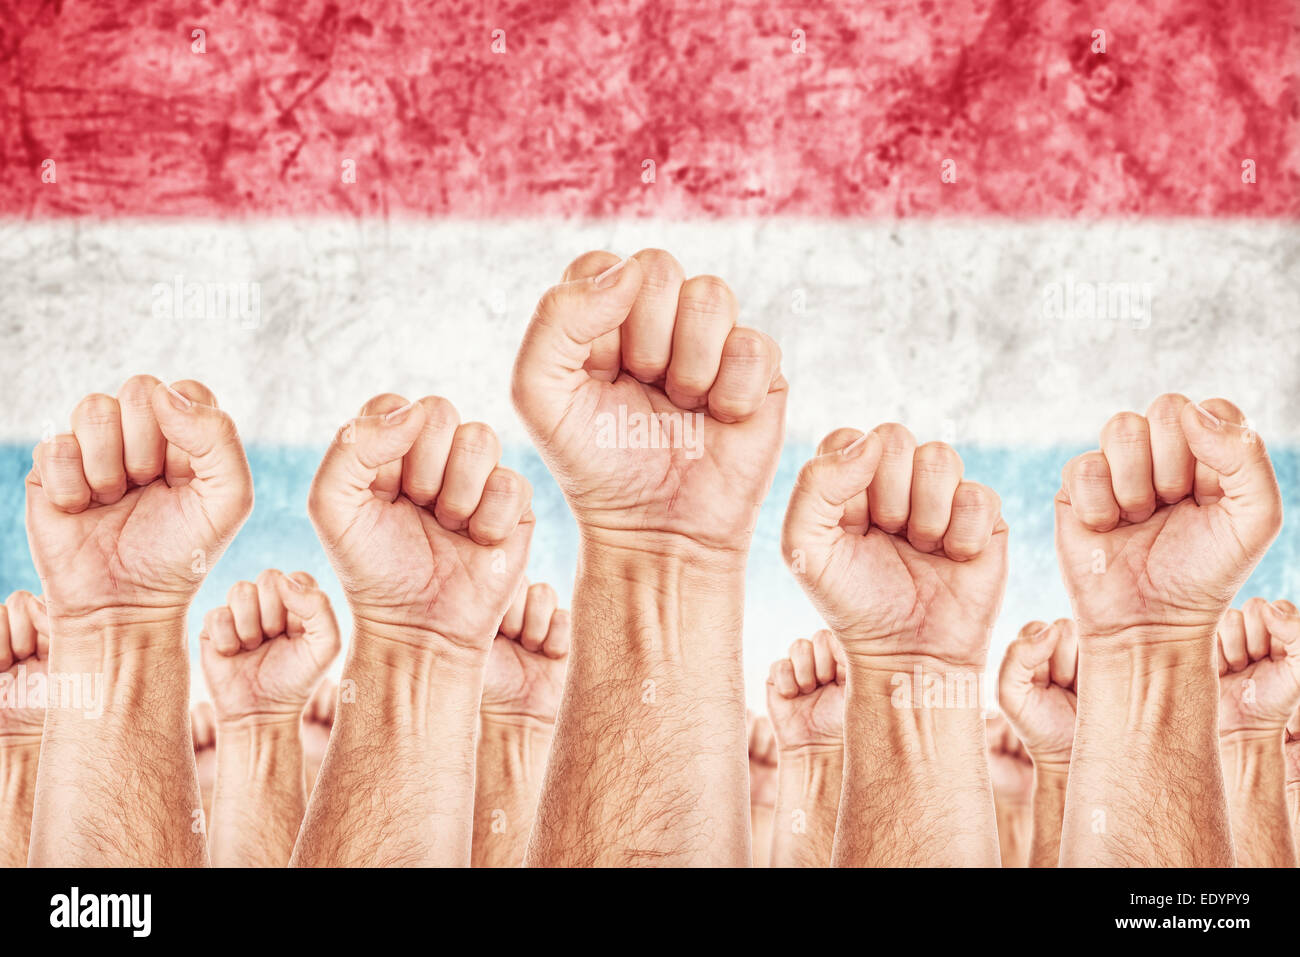 Netherlands Labor movement, workers union strike concept with male fists raised in the air fighting for their rights Stock Photo